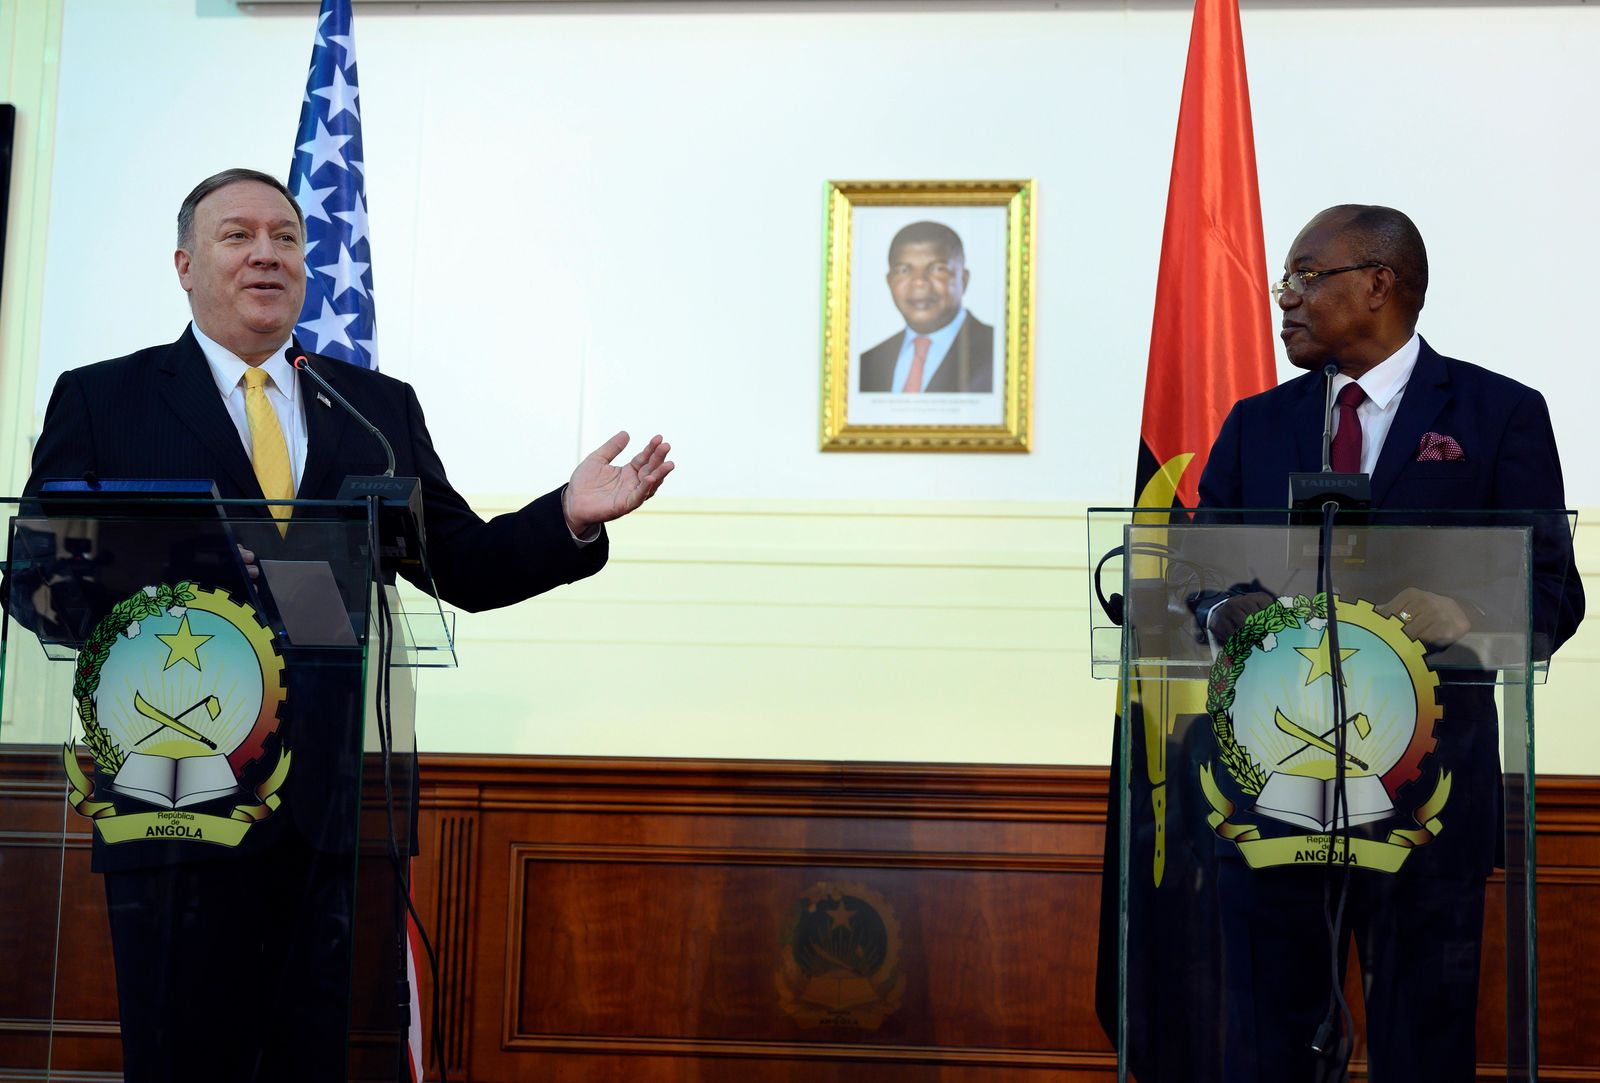 US Secretary of State, Mike Pompeo, left, and Angola Foreign Minister, Manuel Domingos Augusto hold a press conference in Luanda, Angola, Monday Feb. 17, 2020. Pompeo started his tour of Africa in Senegal, the first U.S. Cabinet official to visit in more than 18 months. He left Senegal Sunday to arrive in Angola and will then travel on to Ethiopia as the Trump administration tries to counter the growing interest of China, Russia and other global powers in Africa and its booming young population of more than 1.2 billion. (Andrew Caballero-Reynolds/Pool via AP)